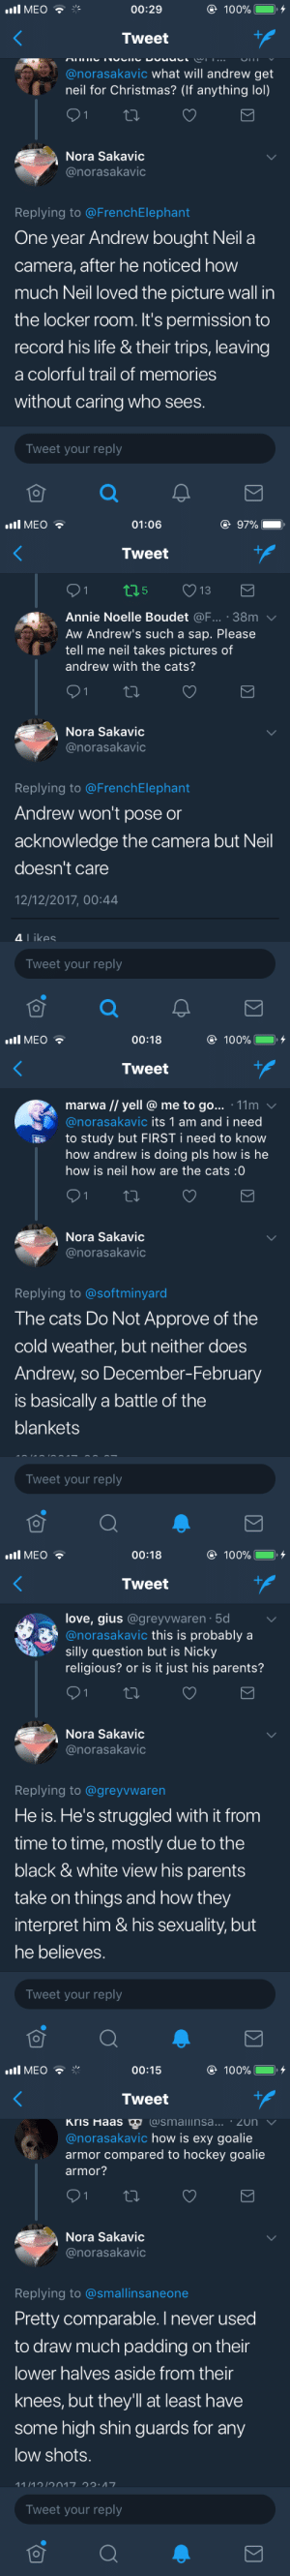 dont-say-stupid-things:  Nora Sakavic - Twitter Replies (12.12.2017) - Part I: dont-say-stupid-things:  Nora Sakavic - Twitter Replies (12.12.2017) - Part I